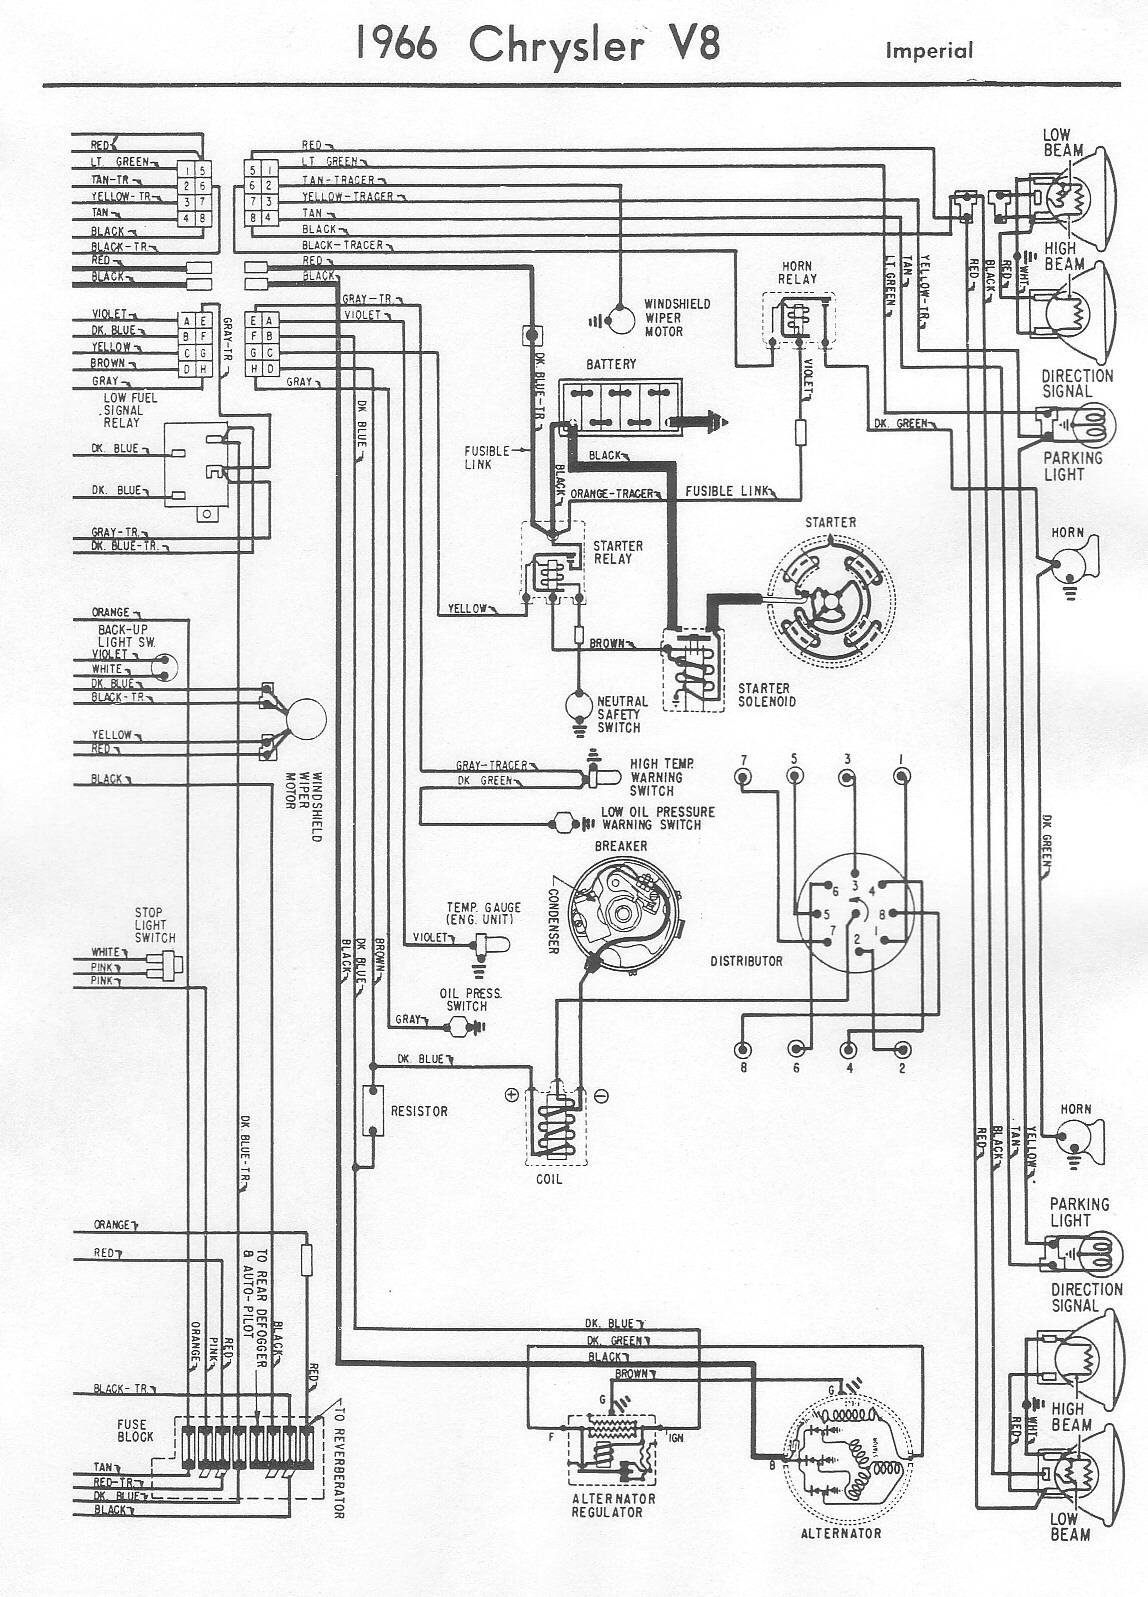 free auto wiring diagram free auto wiring diagram downloads free auto wiring diagrams chevy